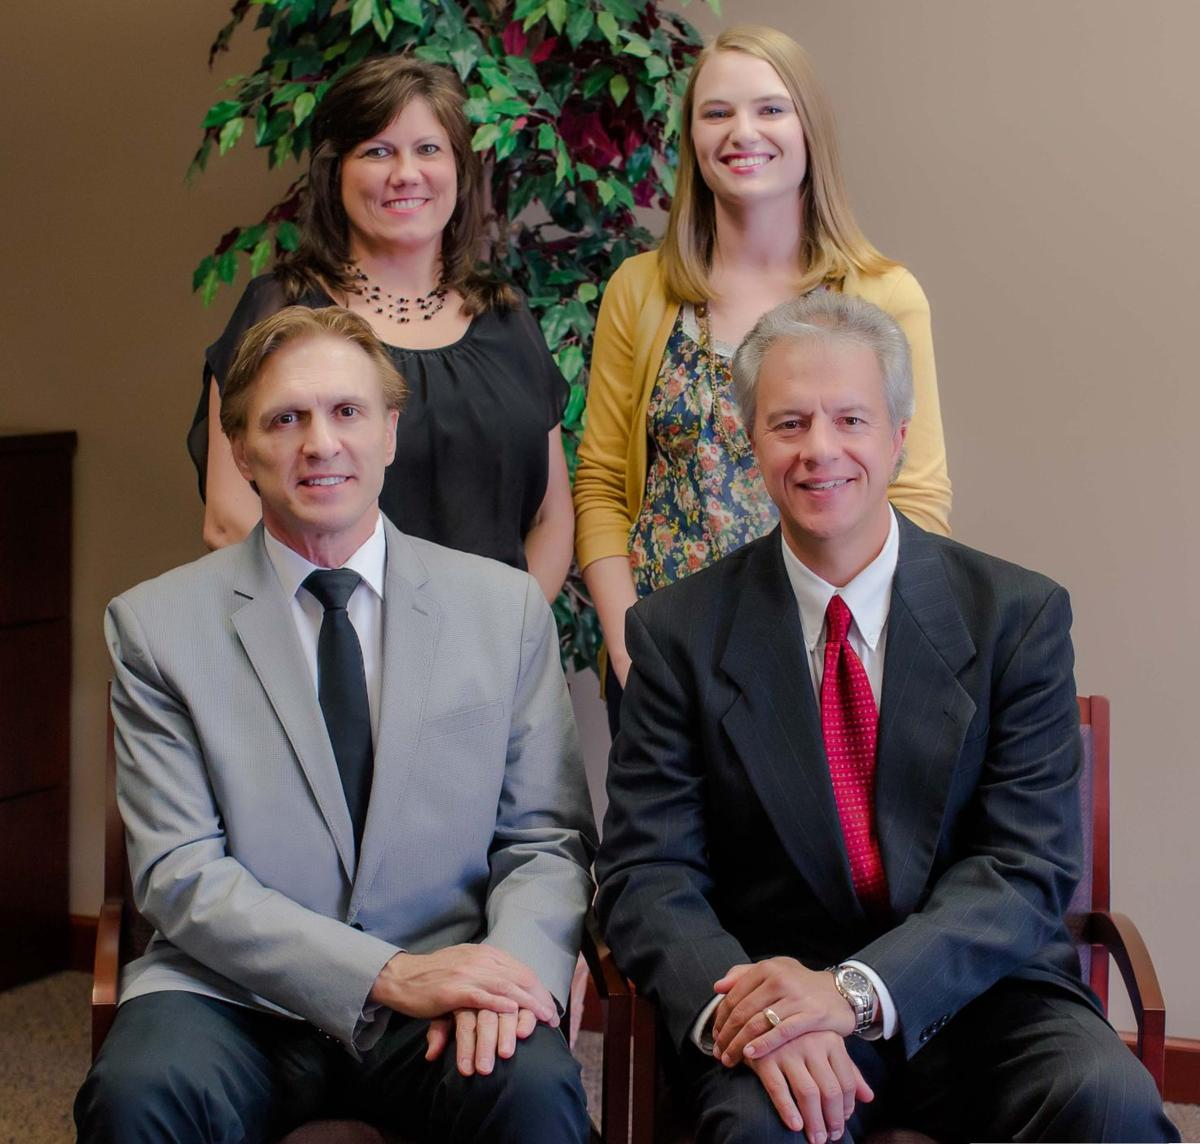 Meet the staff of LPL Financial!